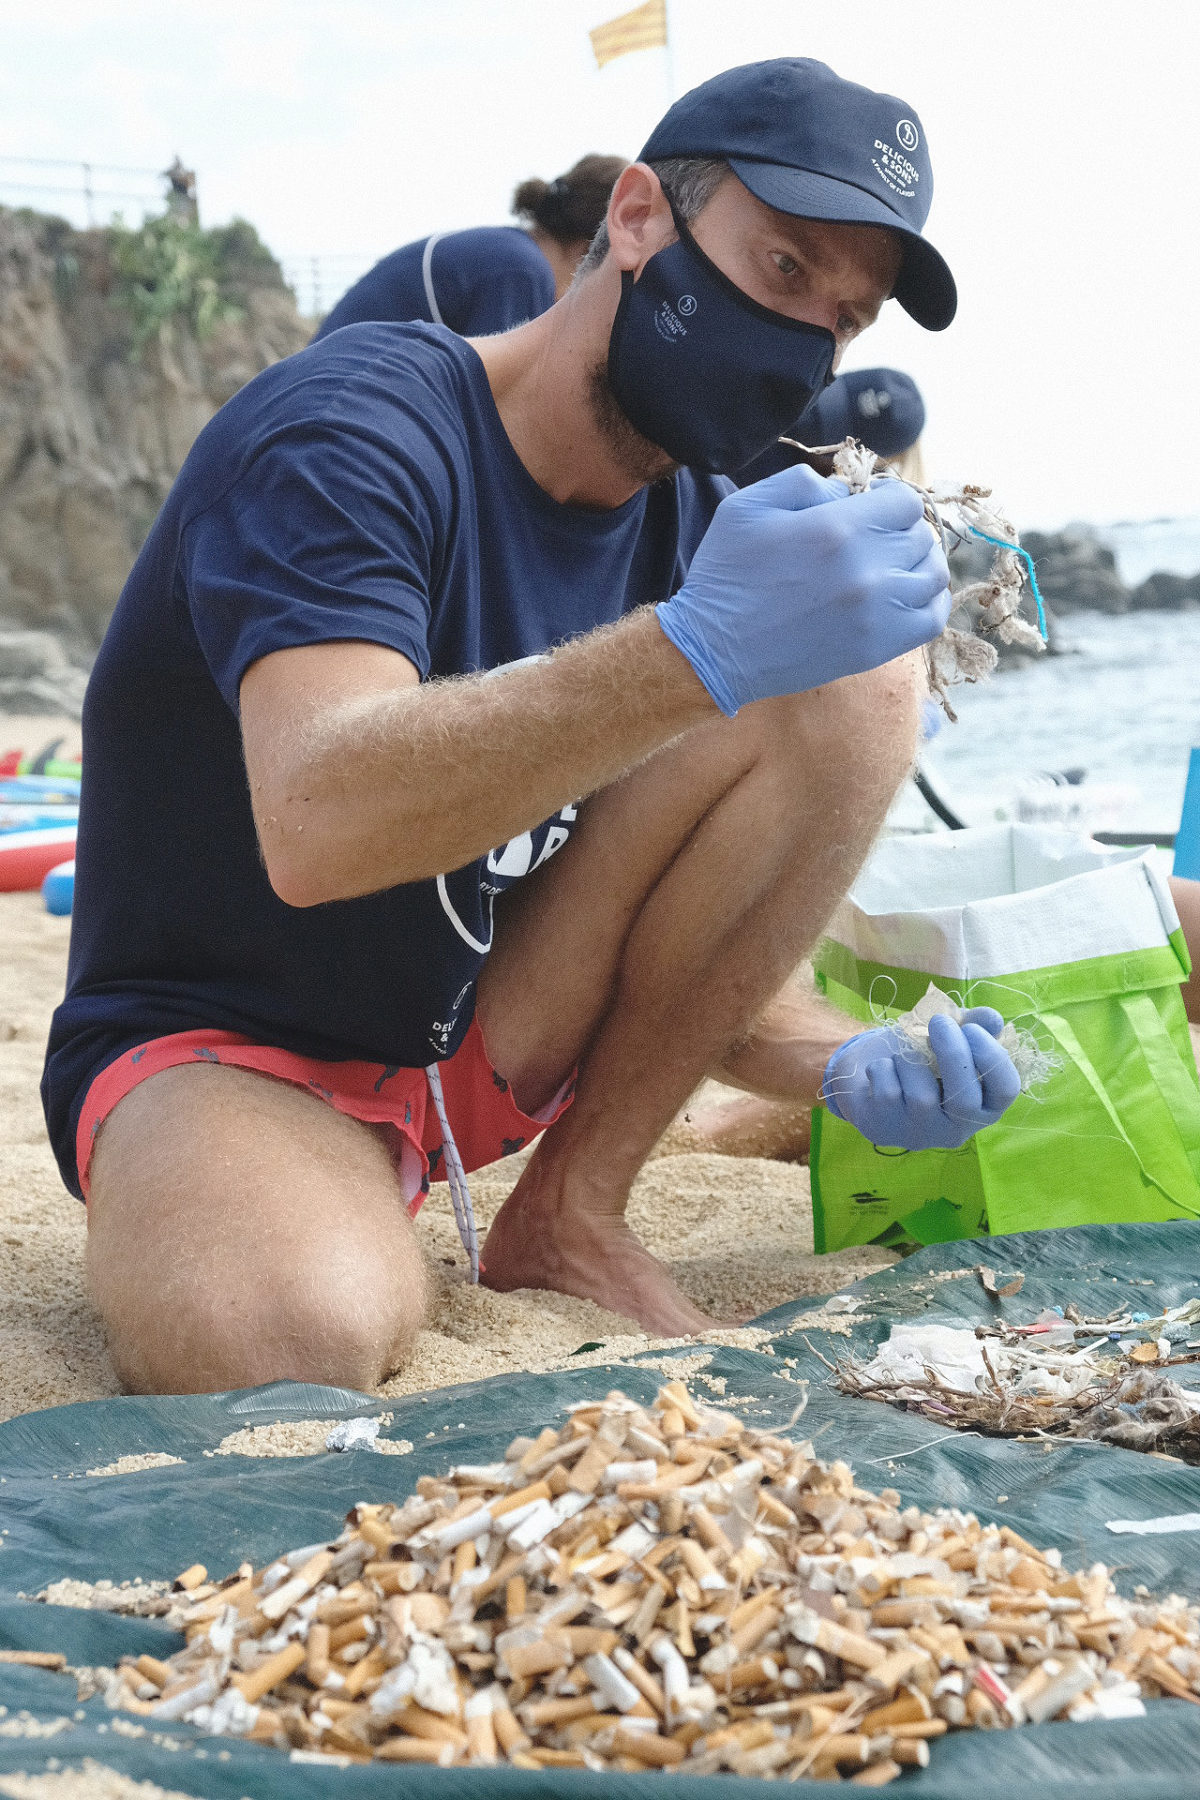 Environmental Awareness for the Mediterranean: Multi-dimensional Cleanup of the Mediterranean 9/19/2020 — Delicious & Sons